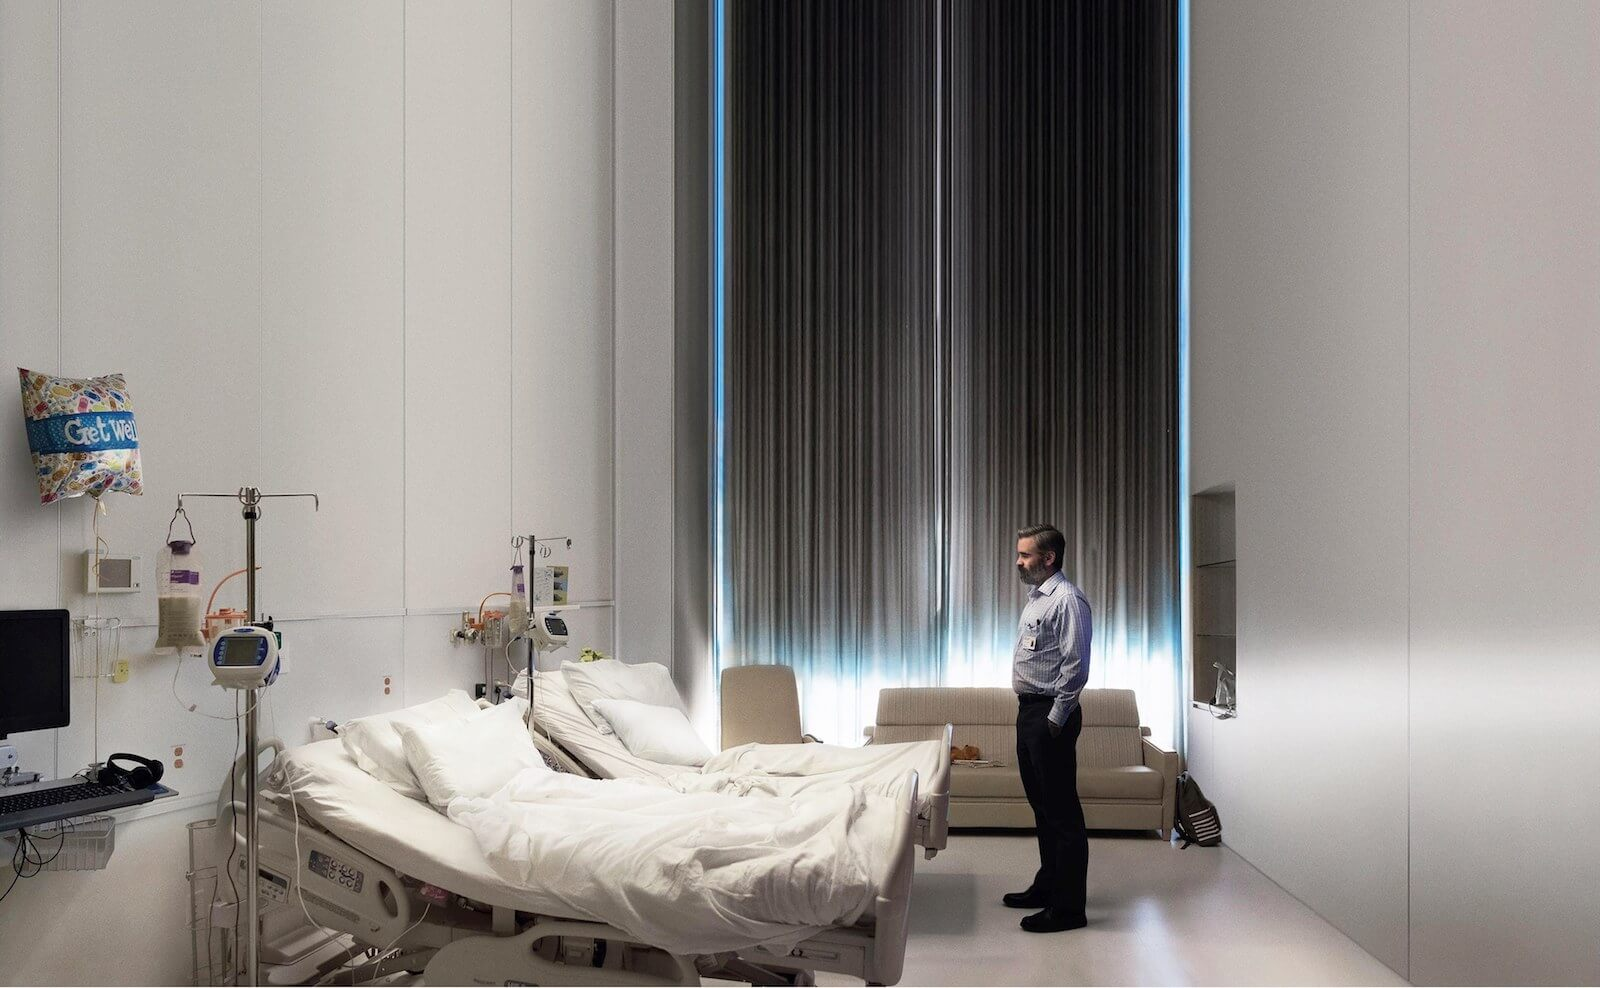 How structure keeps an audience from questioning the absurd in The Killing of a Sacred Deer